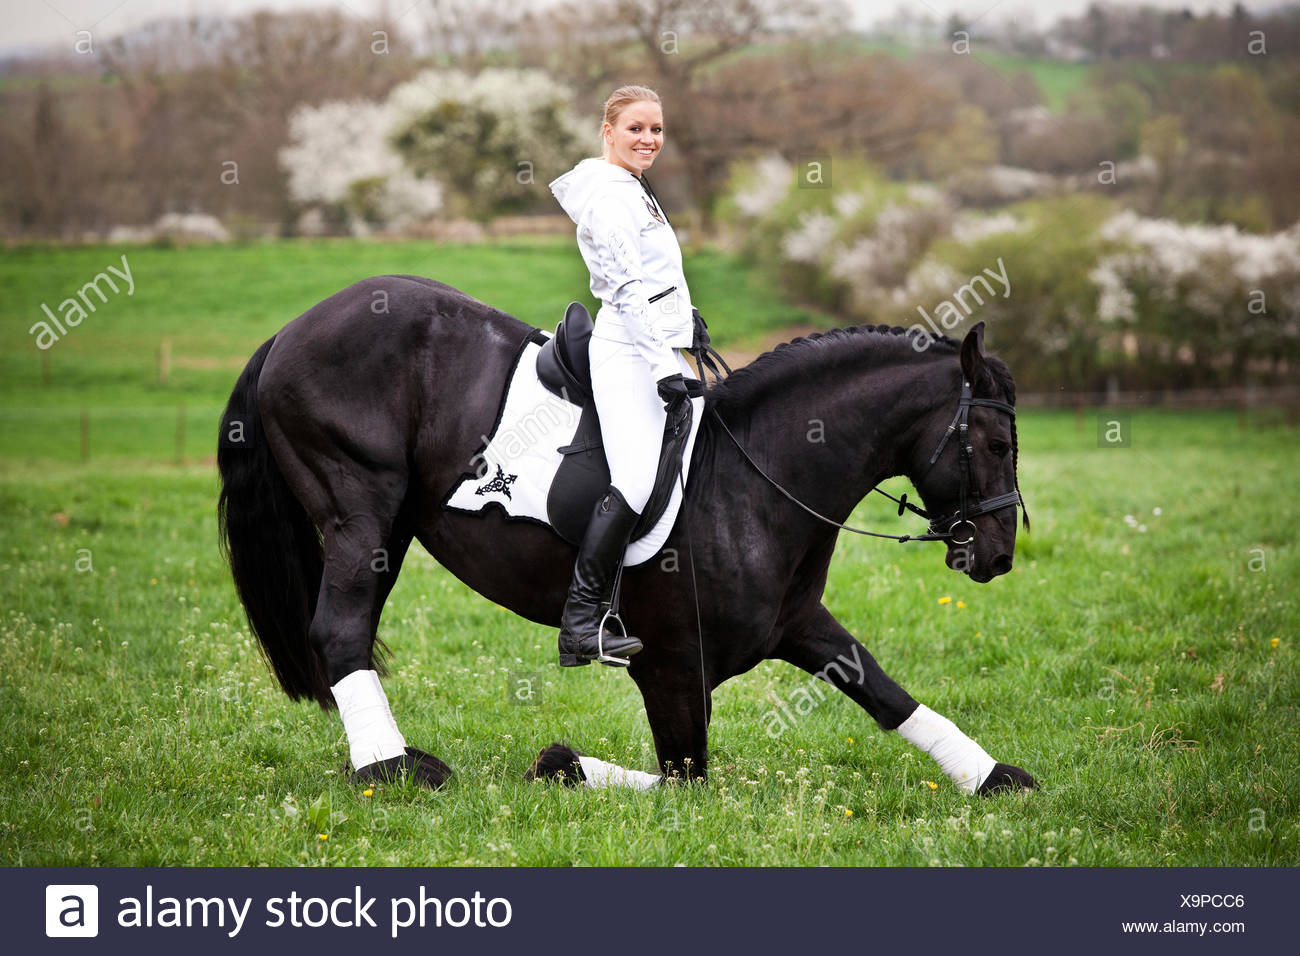 Friesian or Frisian horse, stallion, with a female rider on horseback, on a meadow, classical dressage Stock Photo